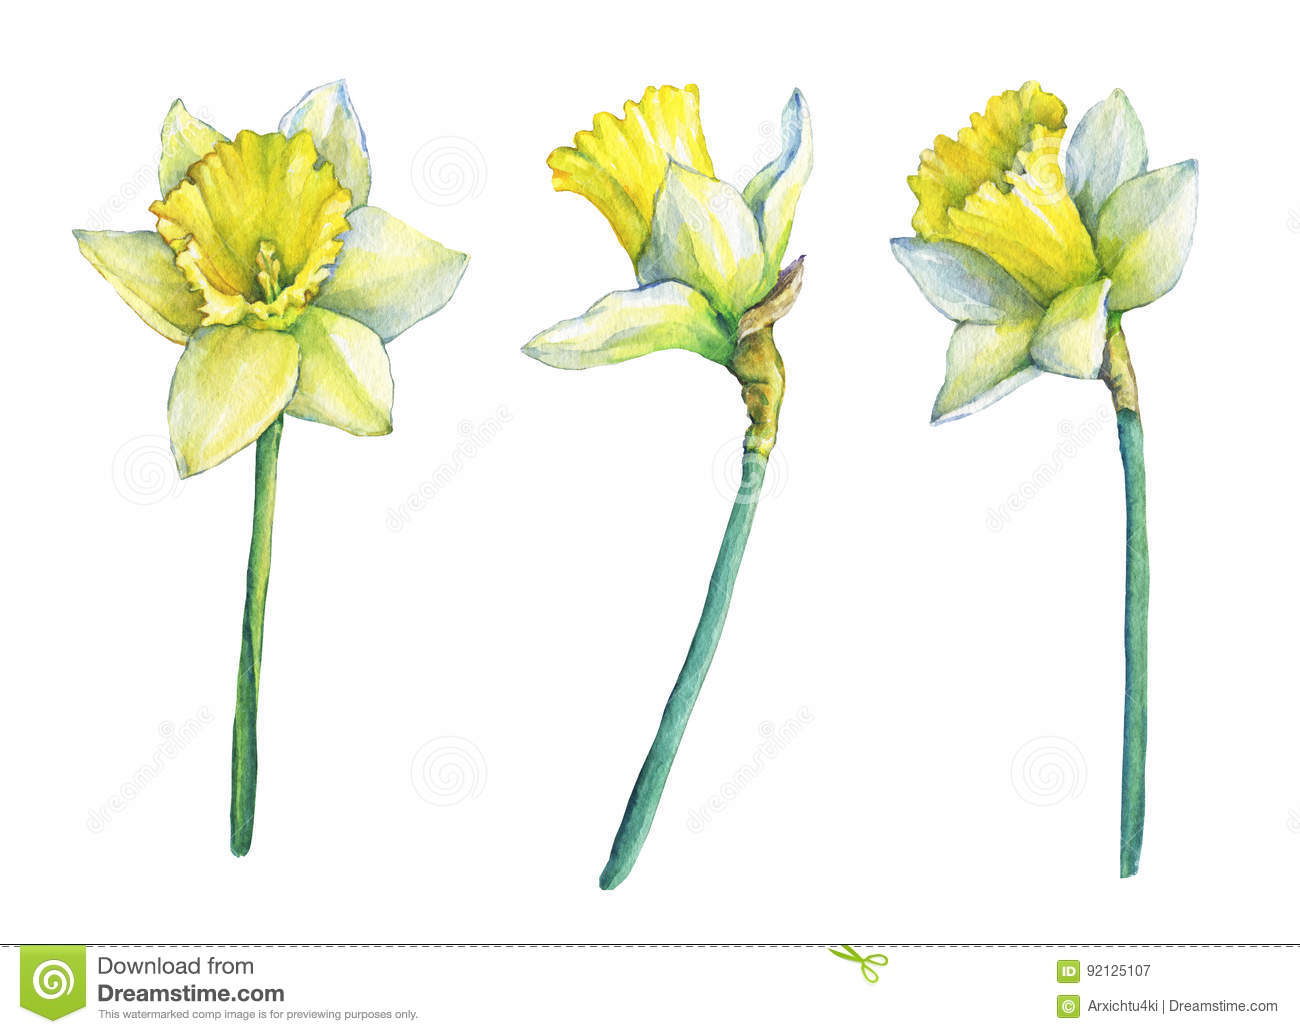 Narcissus common names daffodil flowering plant with yellow flowers narcissus common names daffodil flowering plant with yellow flowers mightylinksfo